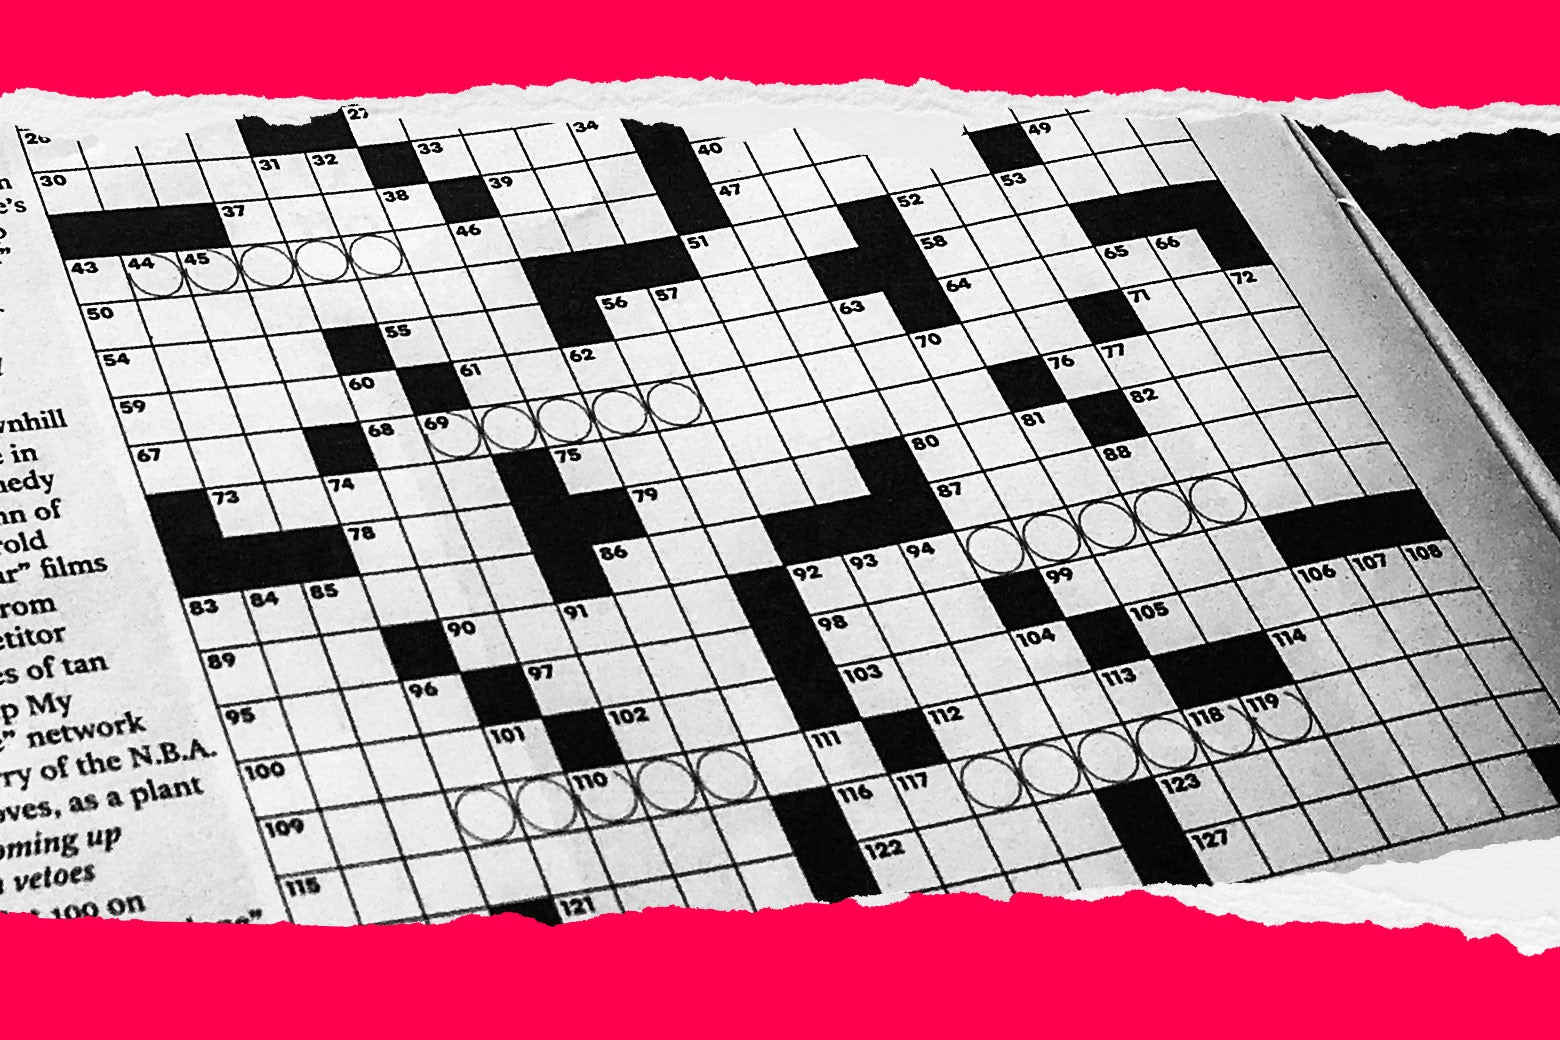 photograph relating to La Times Printable Crossword referred to as The NYT crossword puzzles seek the services of of an ethnic slur suggests a large amount